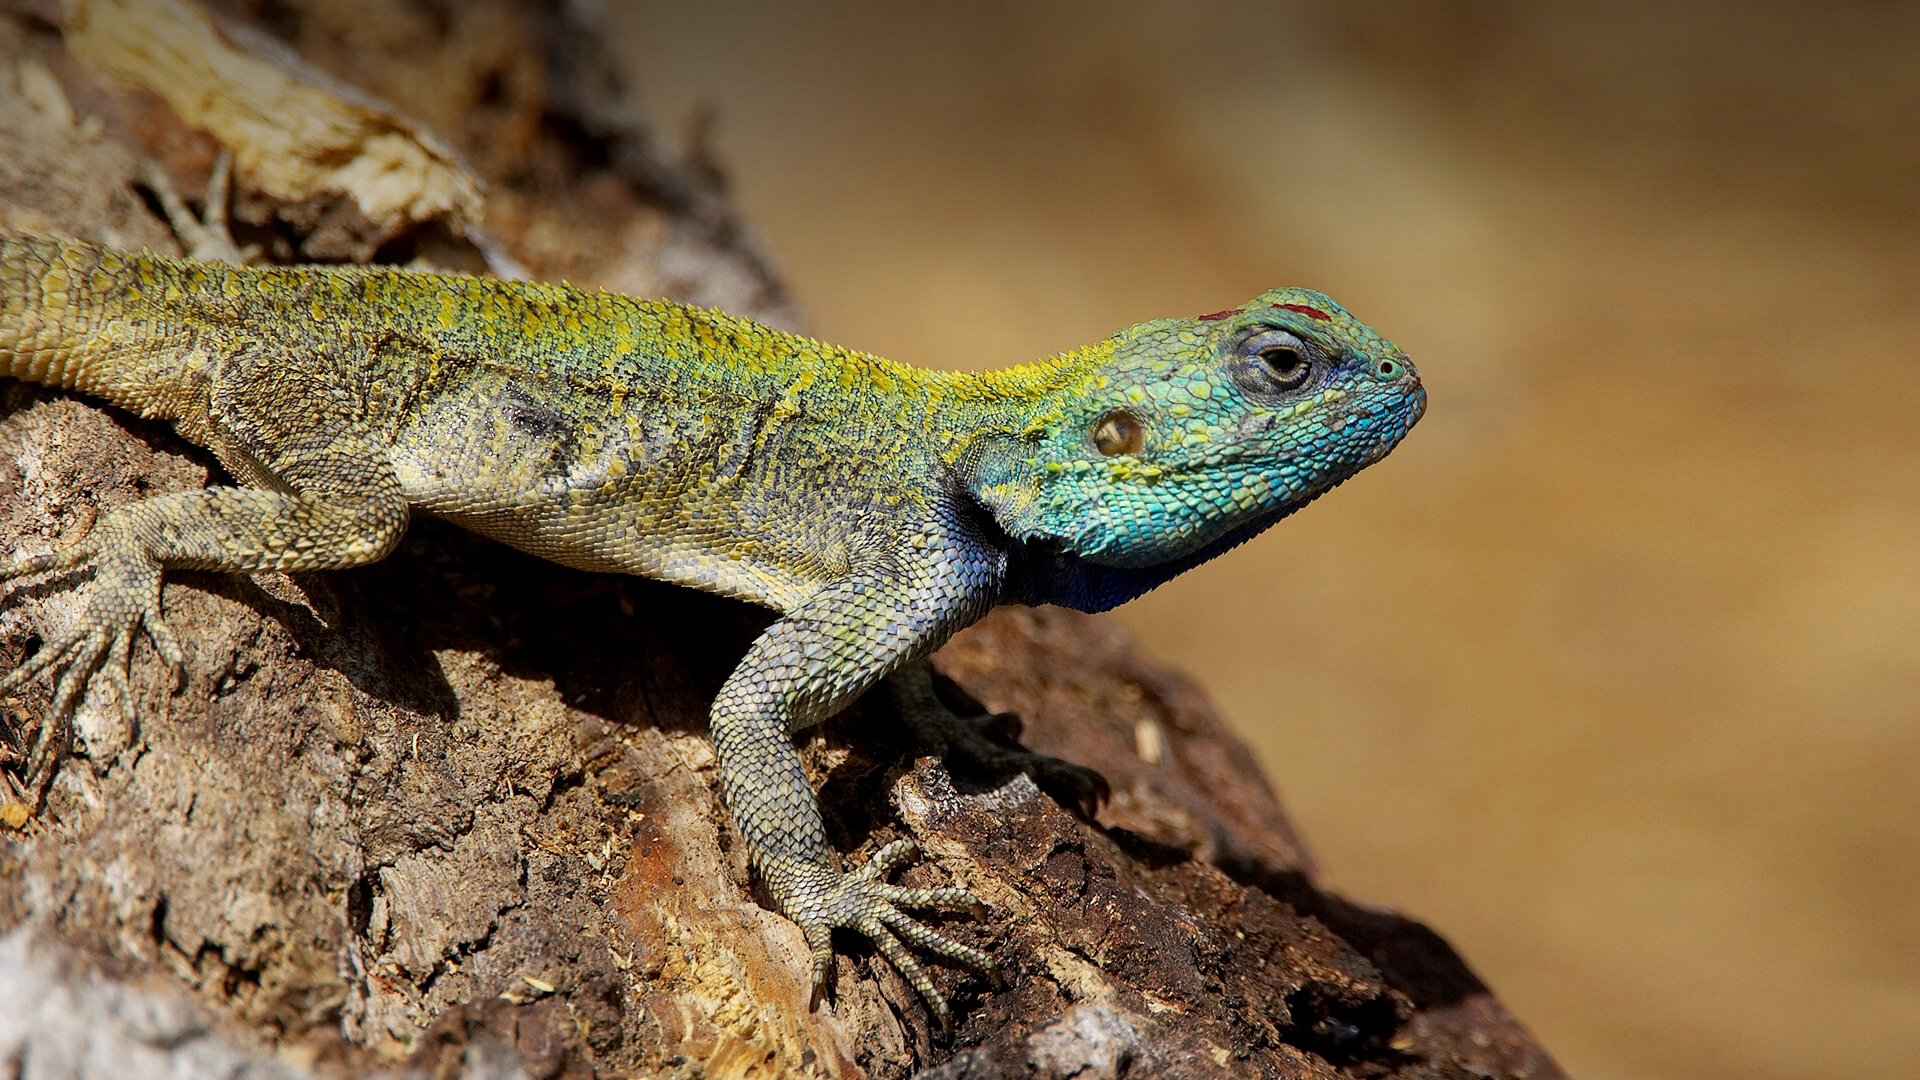 Amazing Lizard Pictures & Backgrounds